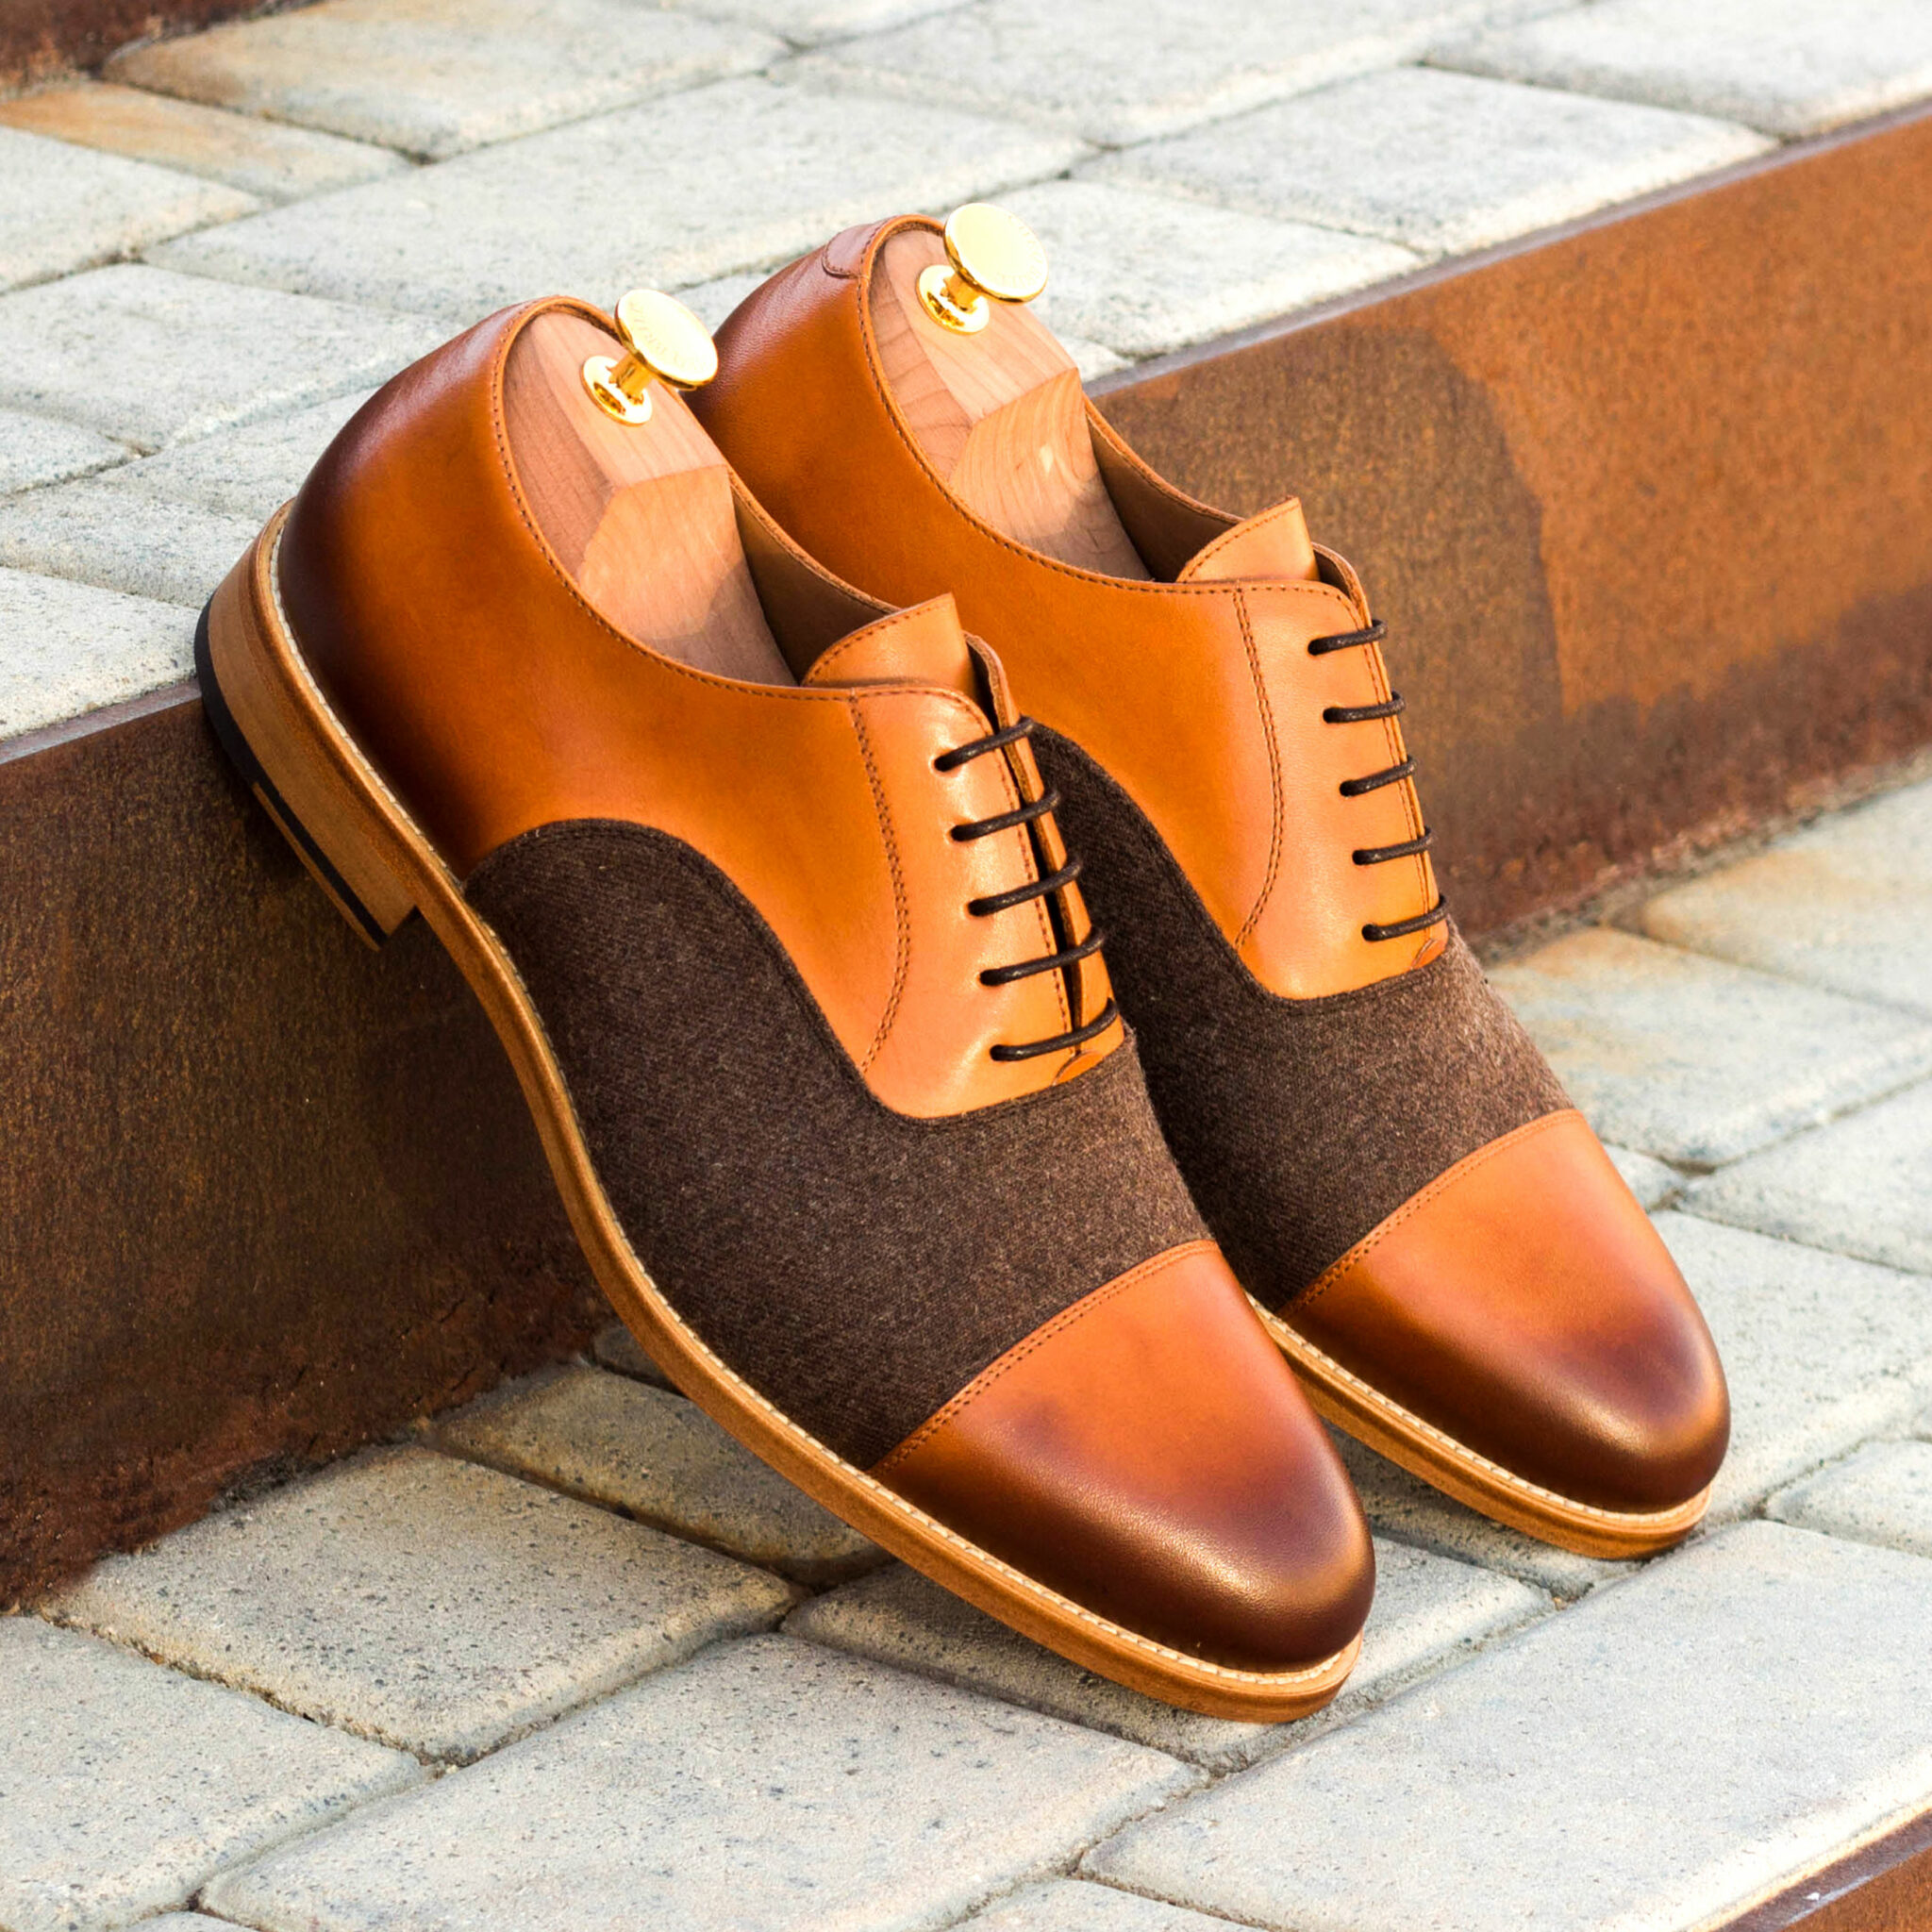 Oxford flannel brown + cognac painted calf : 240€